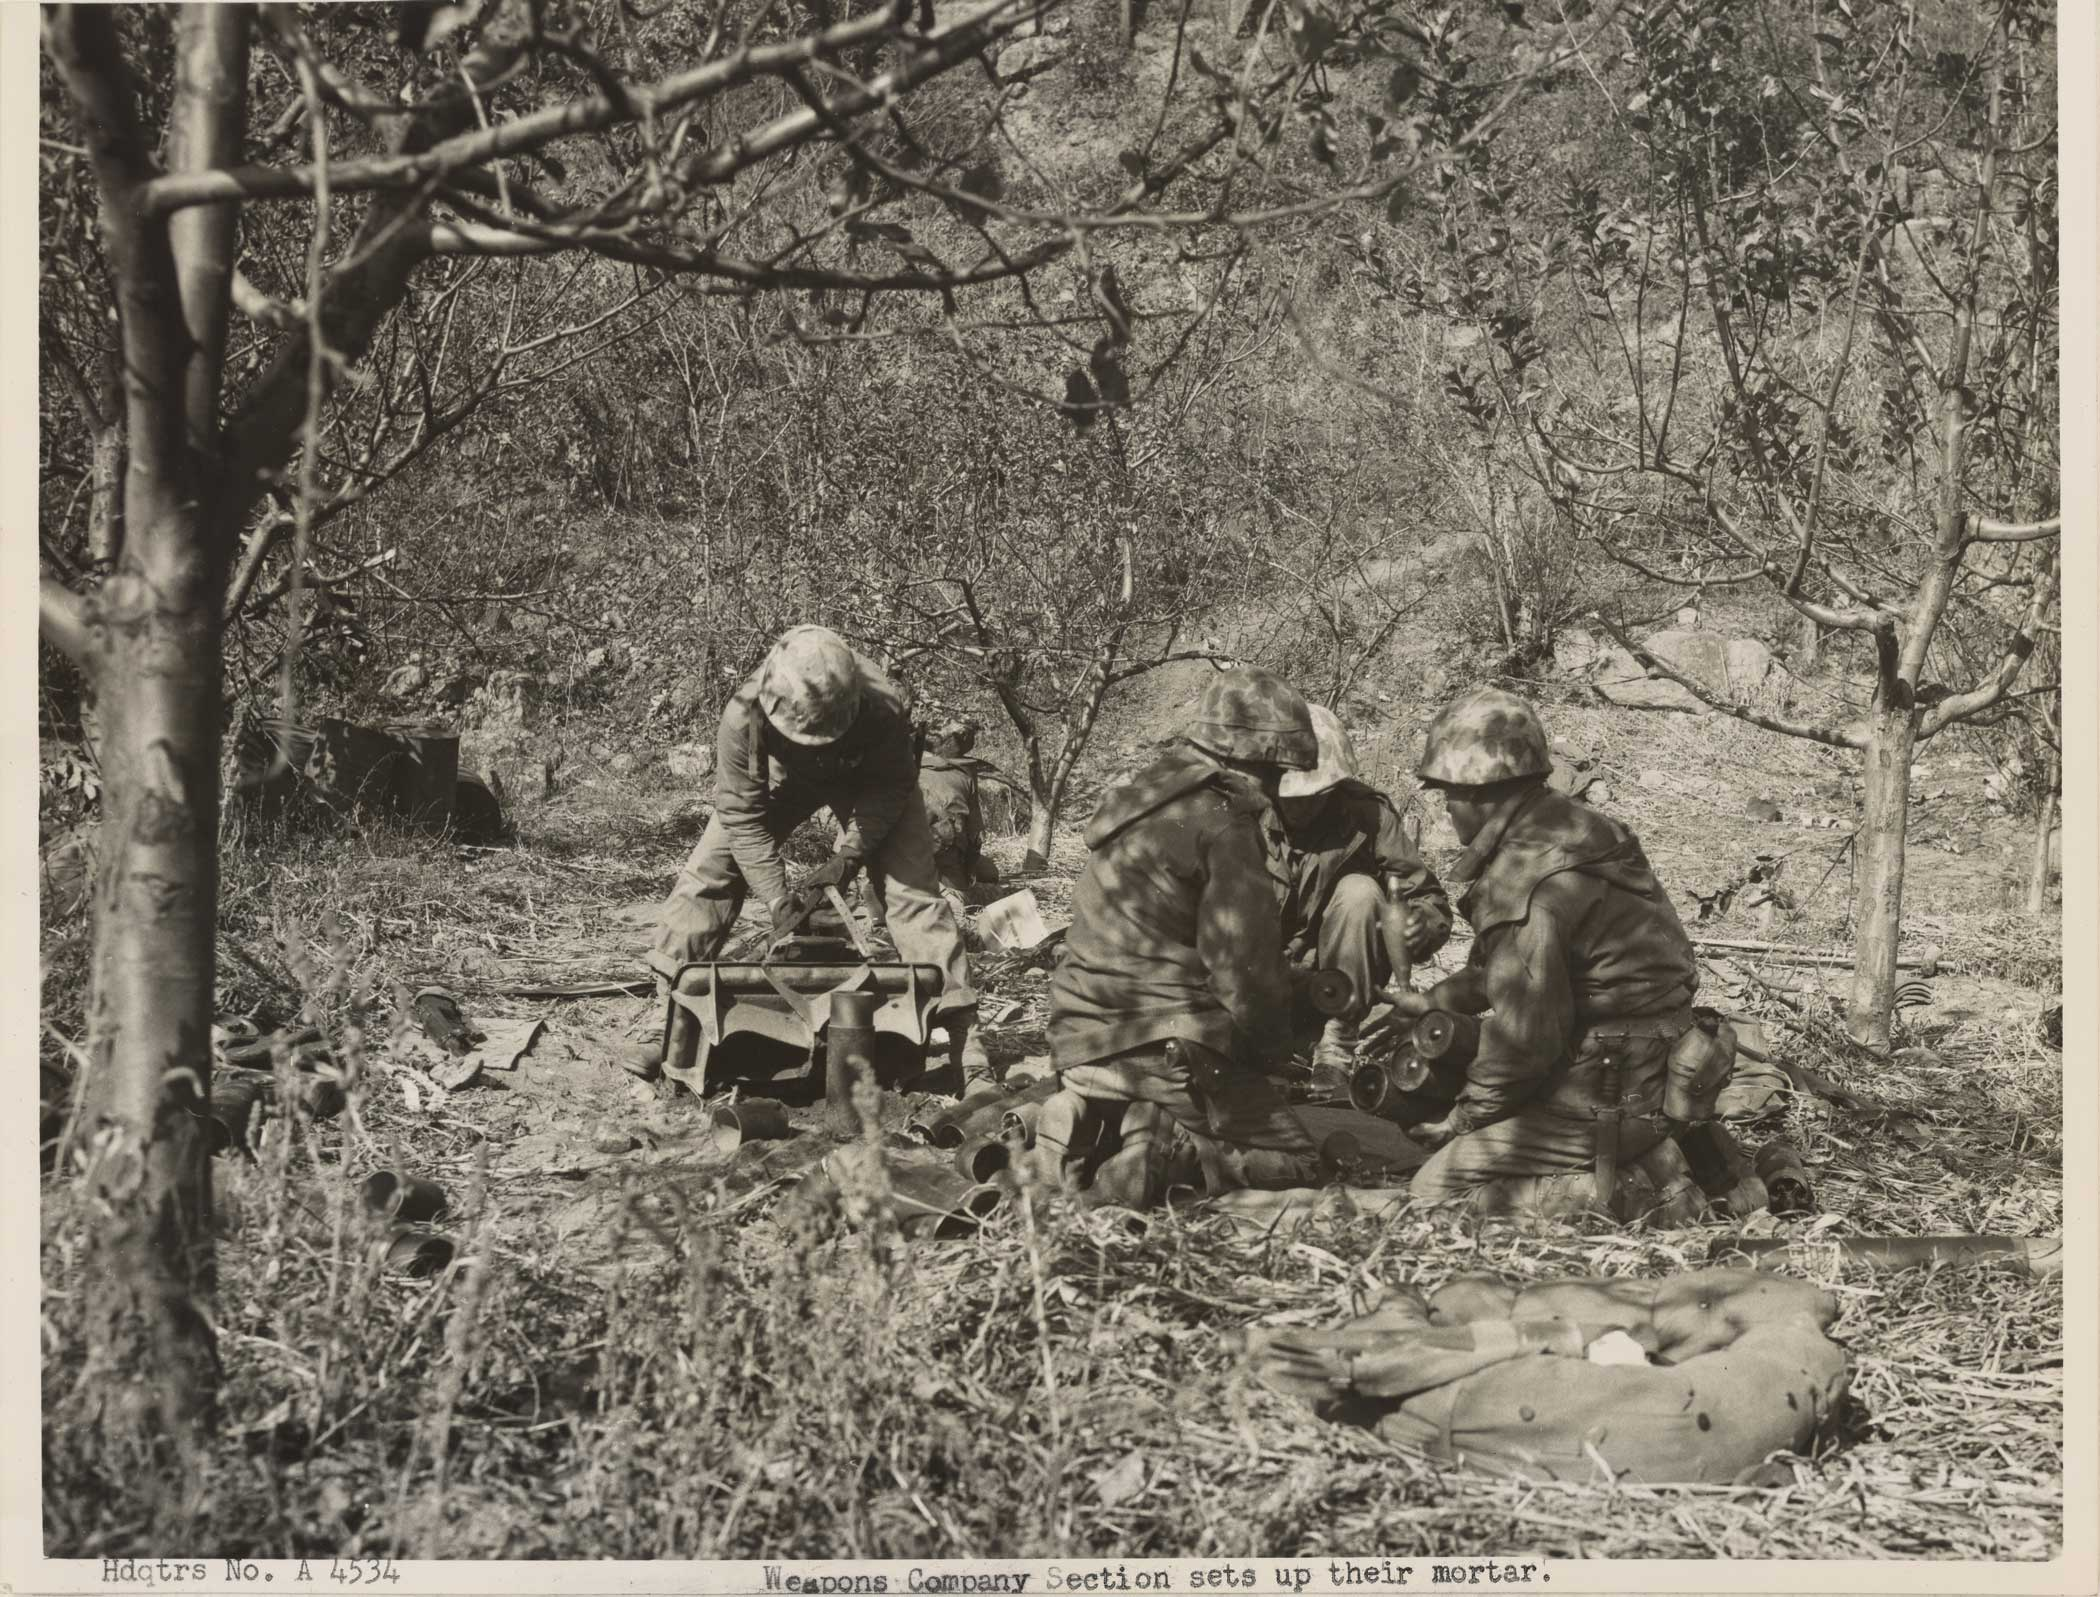 A Marine Corps weapons company section sets up their mortar to take communist positions under fire near Chosin Reservoir. Photo by Katie Lange, courtesy of the U.S. Marine Corps.